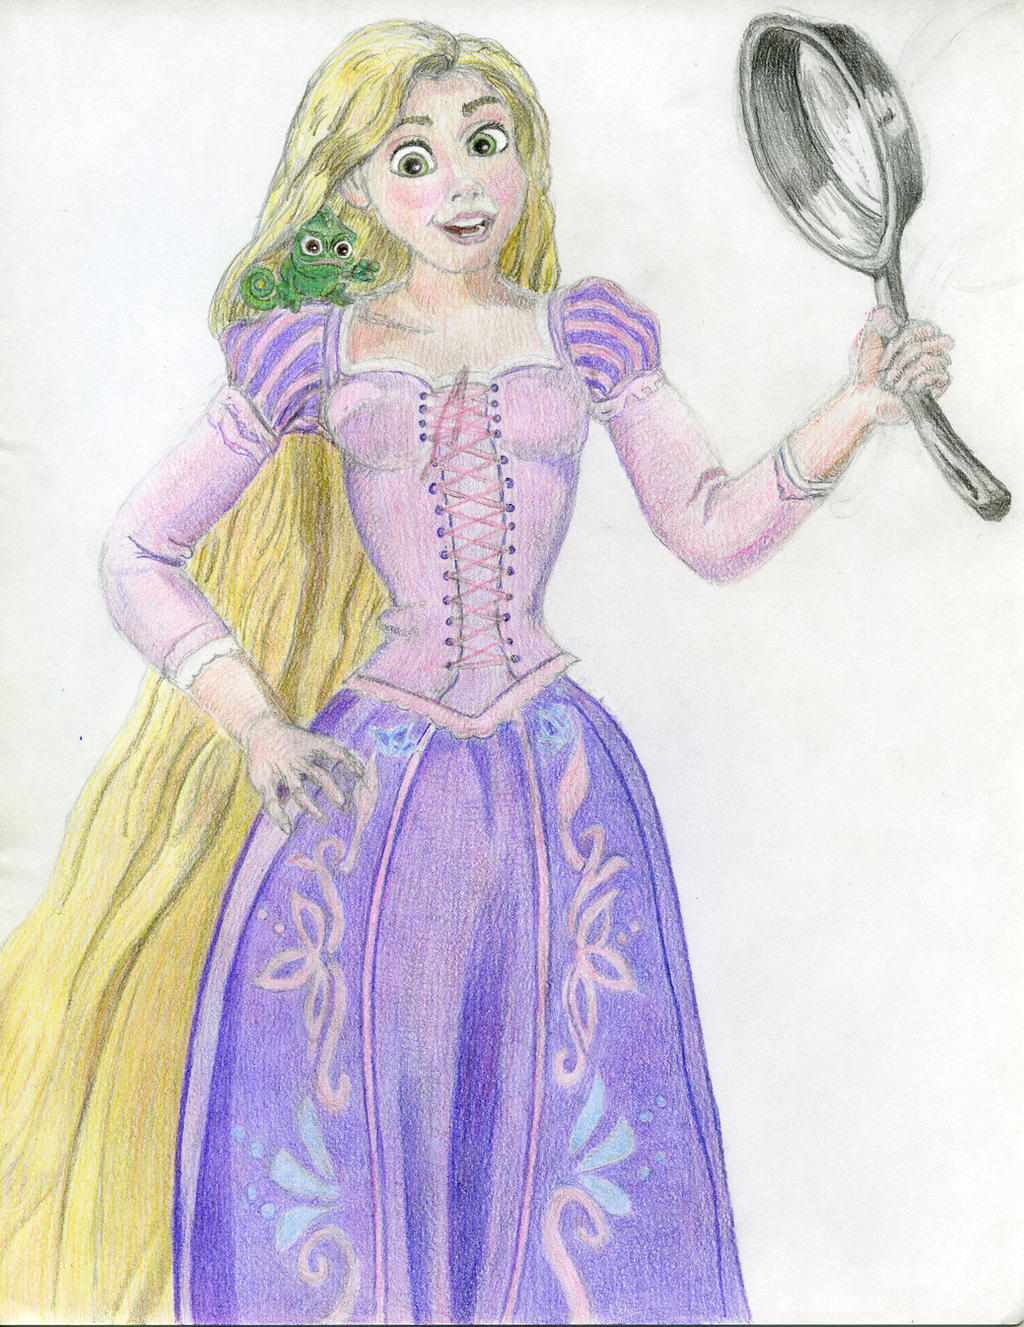 Tangled Drawing Of Rapunzel And Chameleon Pascal 7 By Ent2pri9se On Deviantart